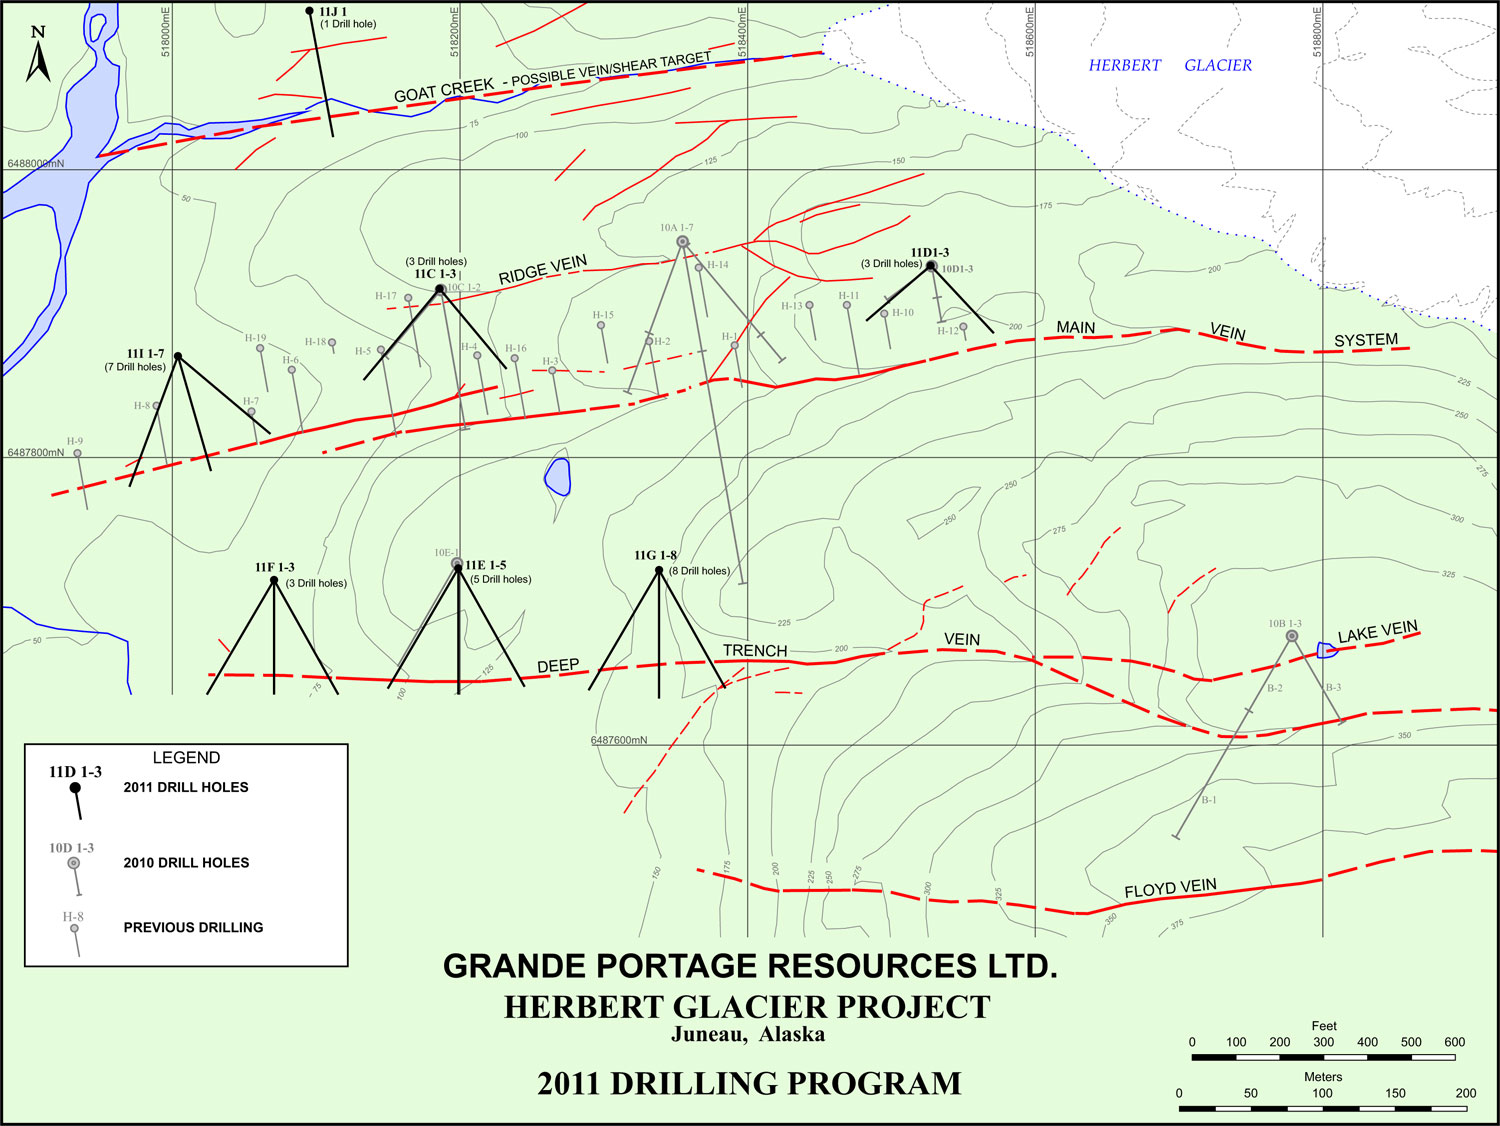 A map of previous drilling sites and potential future sites. Map courtesy of Grande Portage Resources Ltd.